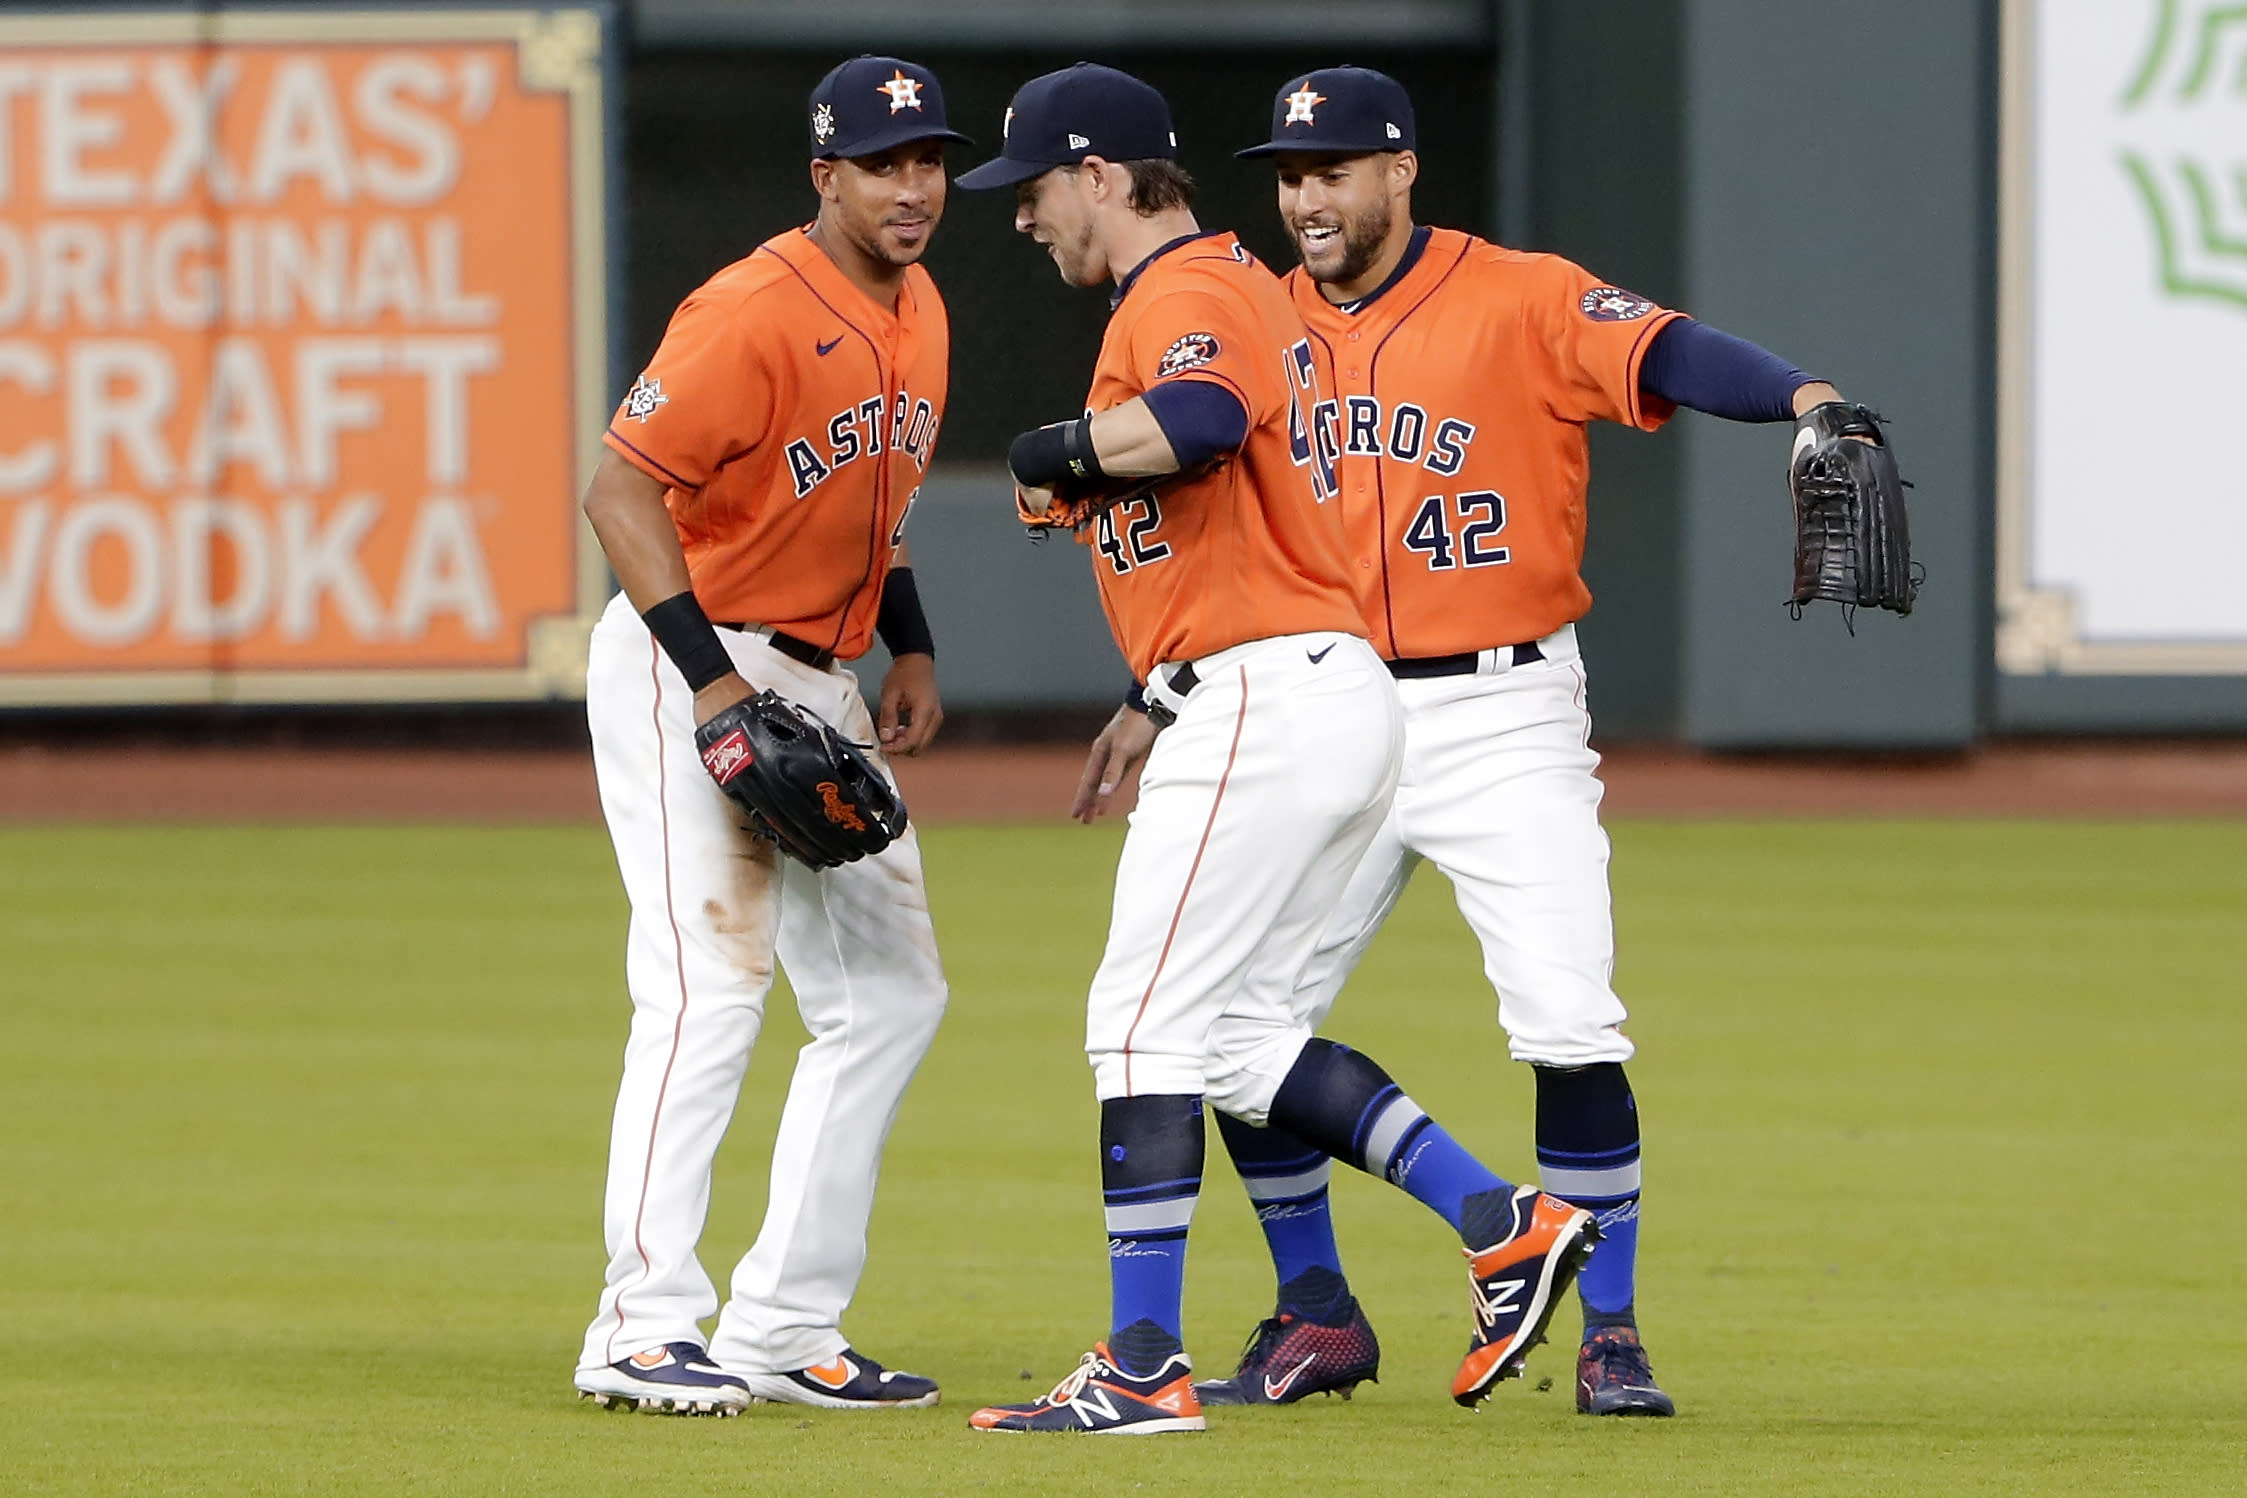 Houston Astros outfielders Michael Brantley, left, Josh Reddick, center, and George Springer, right, celebrate their win over the Oakland Athletics after the first baseball game of a doubleheader Saturday, Aug. 29, 2020, in Houston. All players and managers are wearing No. 42 as a tribute to baseball great Jackie Robinson. (AP Photo/Michael Wyke)